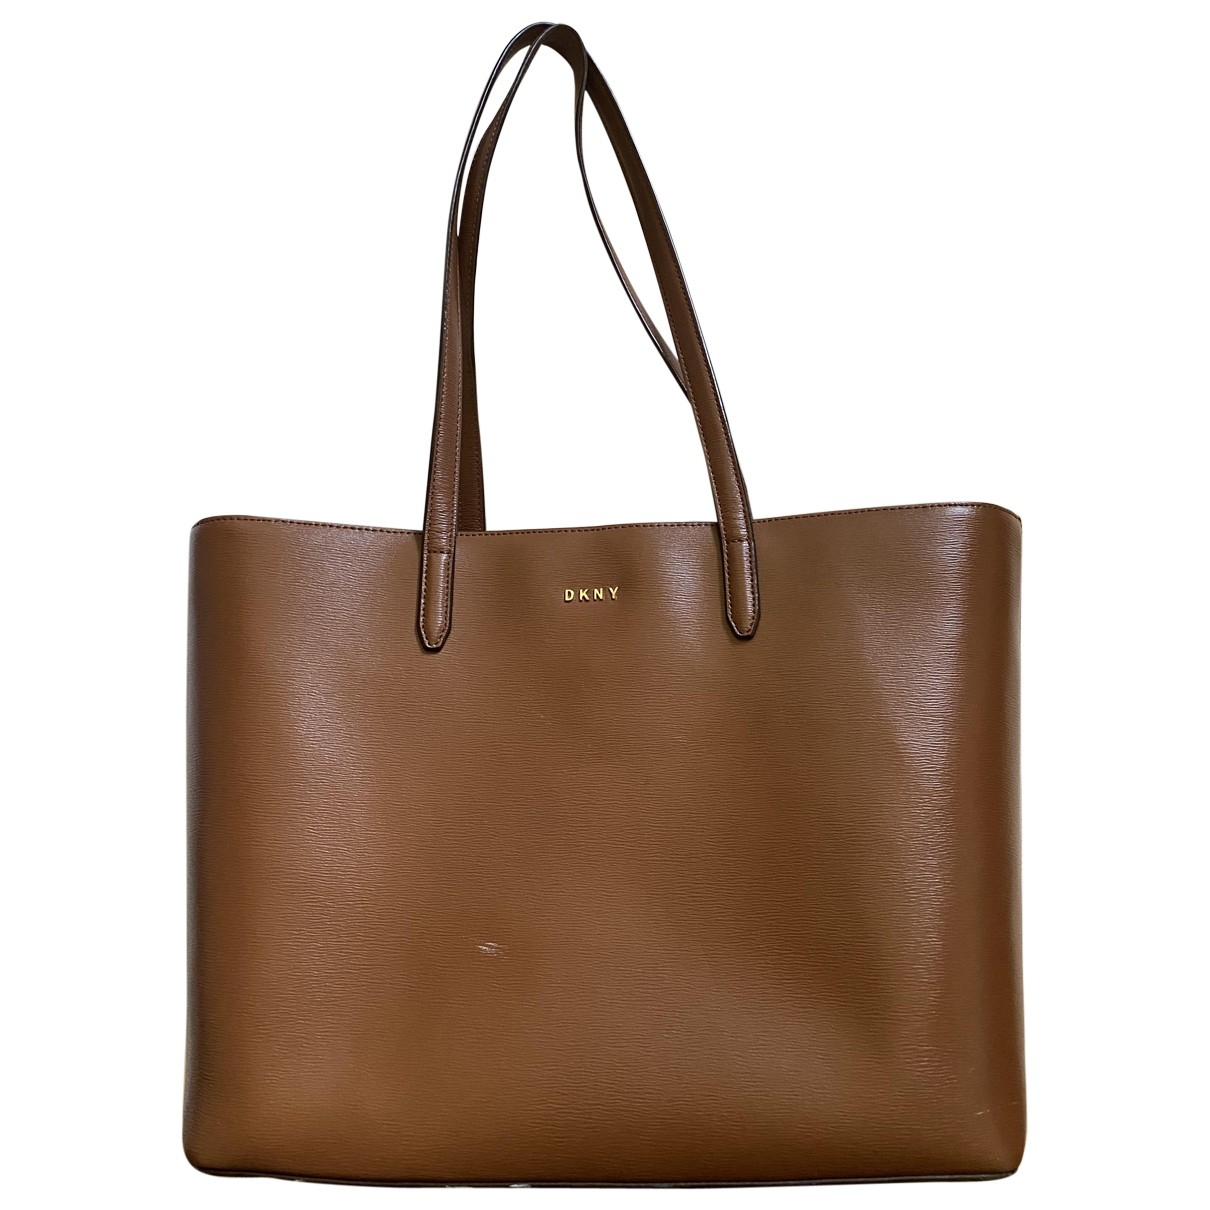 Dkny \N Brown handbag for Women \N